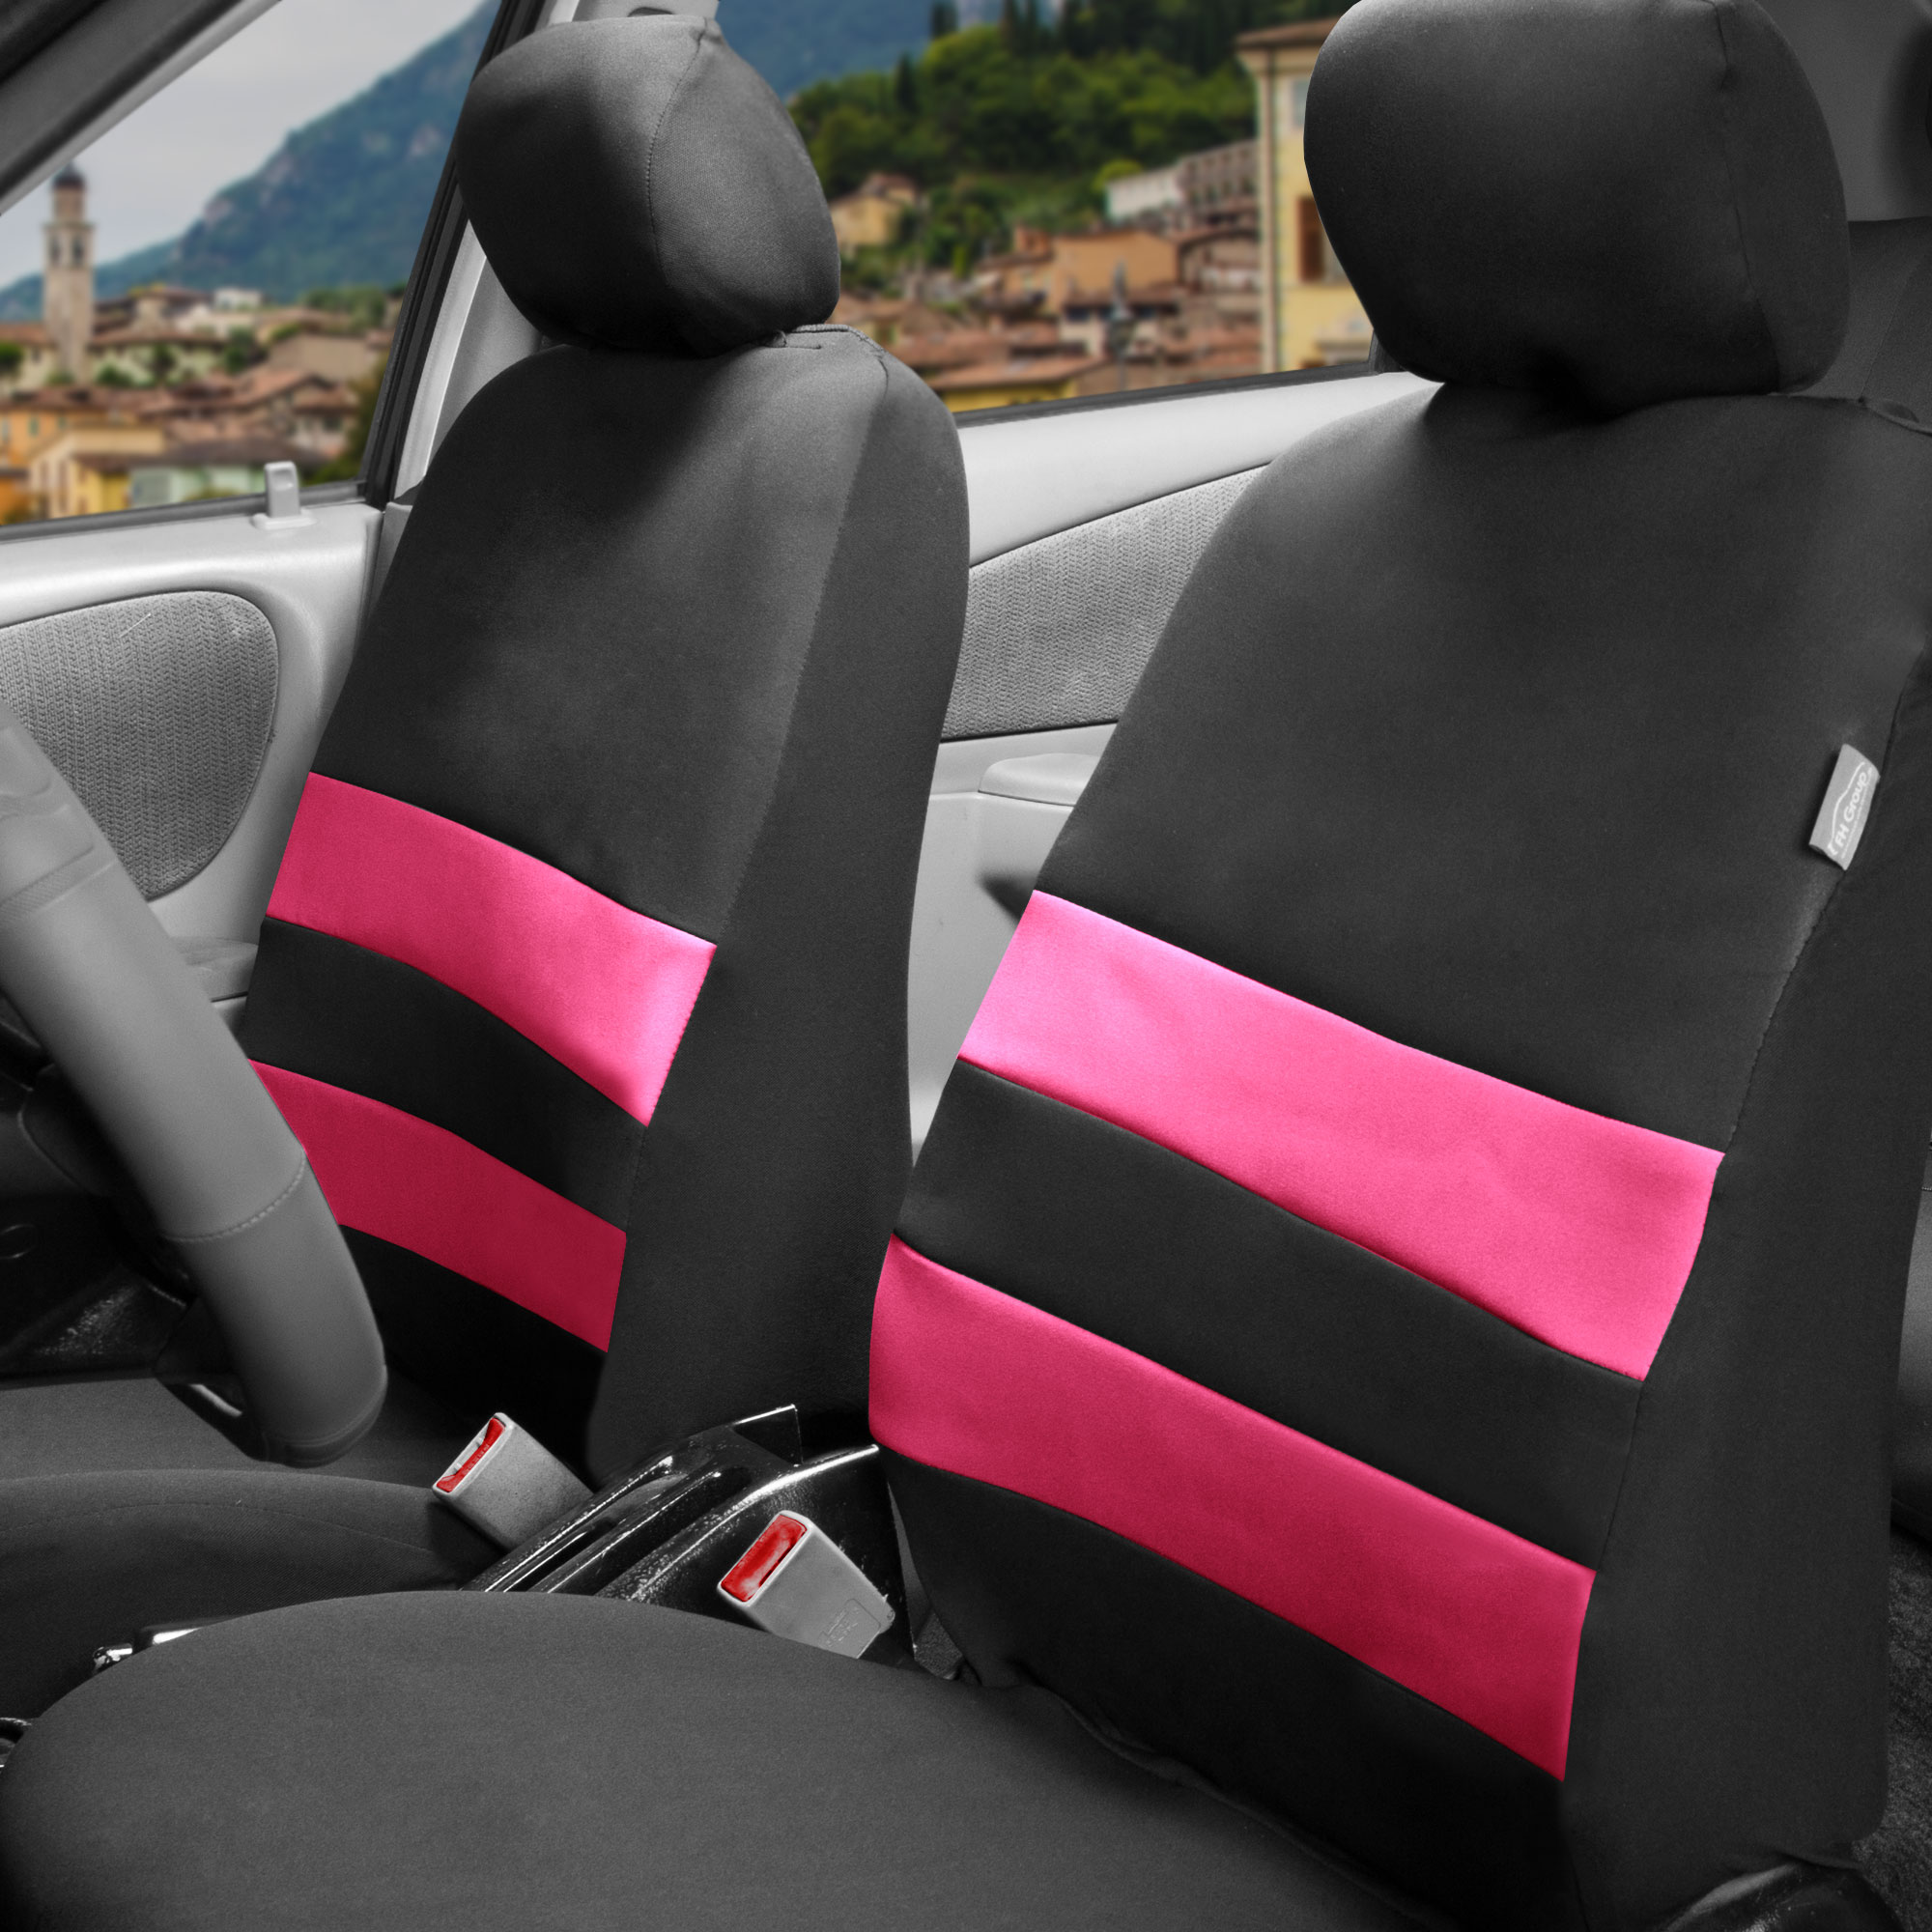 FH Group Premium Neoprene Seat covers, Airbag Compatible, Front Bucket Covers, 9 Colors